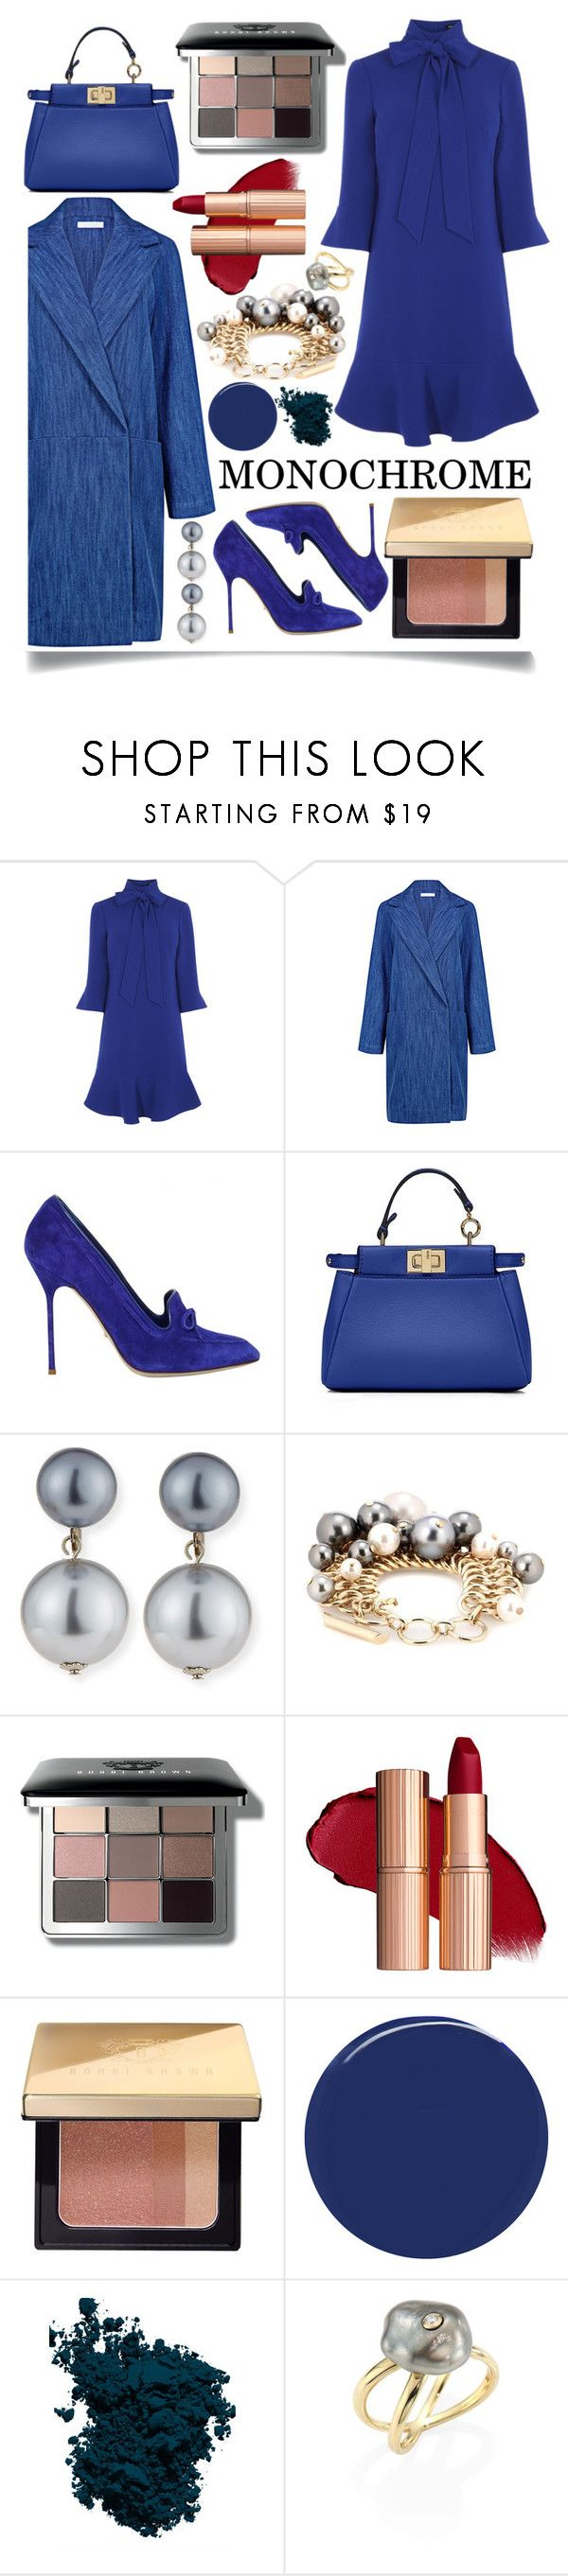 """Monochrome Blue"" by ittie-kittie ❤ liked on Polyvore featuring Atea Oceanie, Sergio Rossi, Fendi, Kenneth Jay Lane, Bobbi Brown Cosmetics, RGB Cosmetics, Laura Mercier and mizuki"